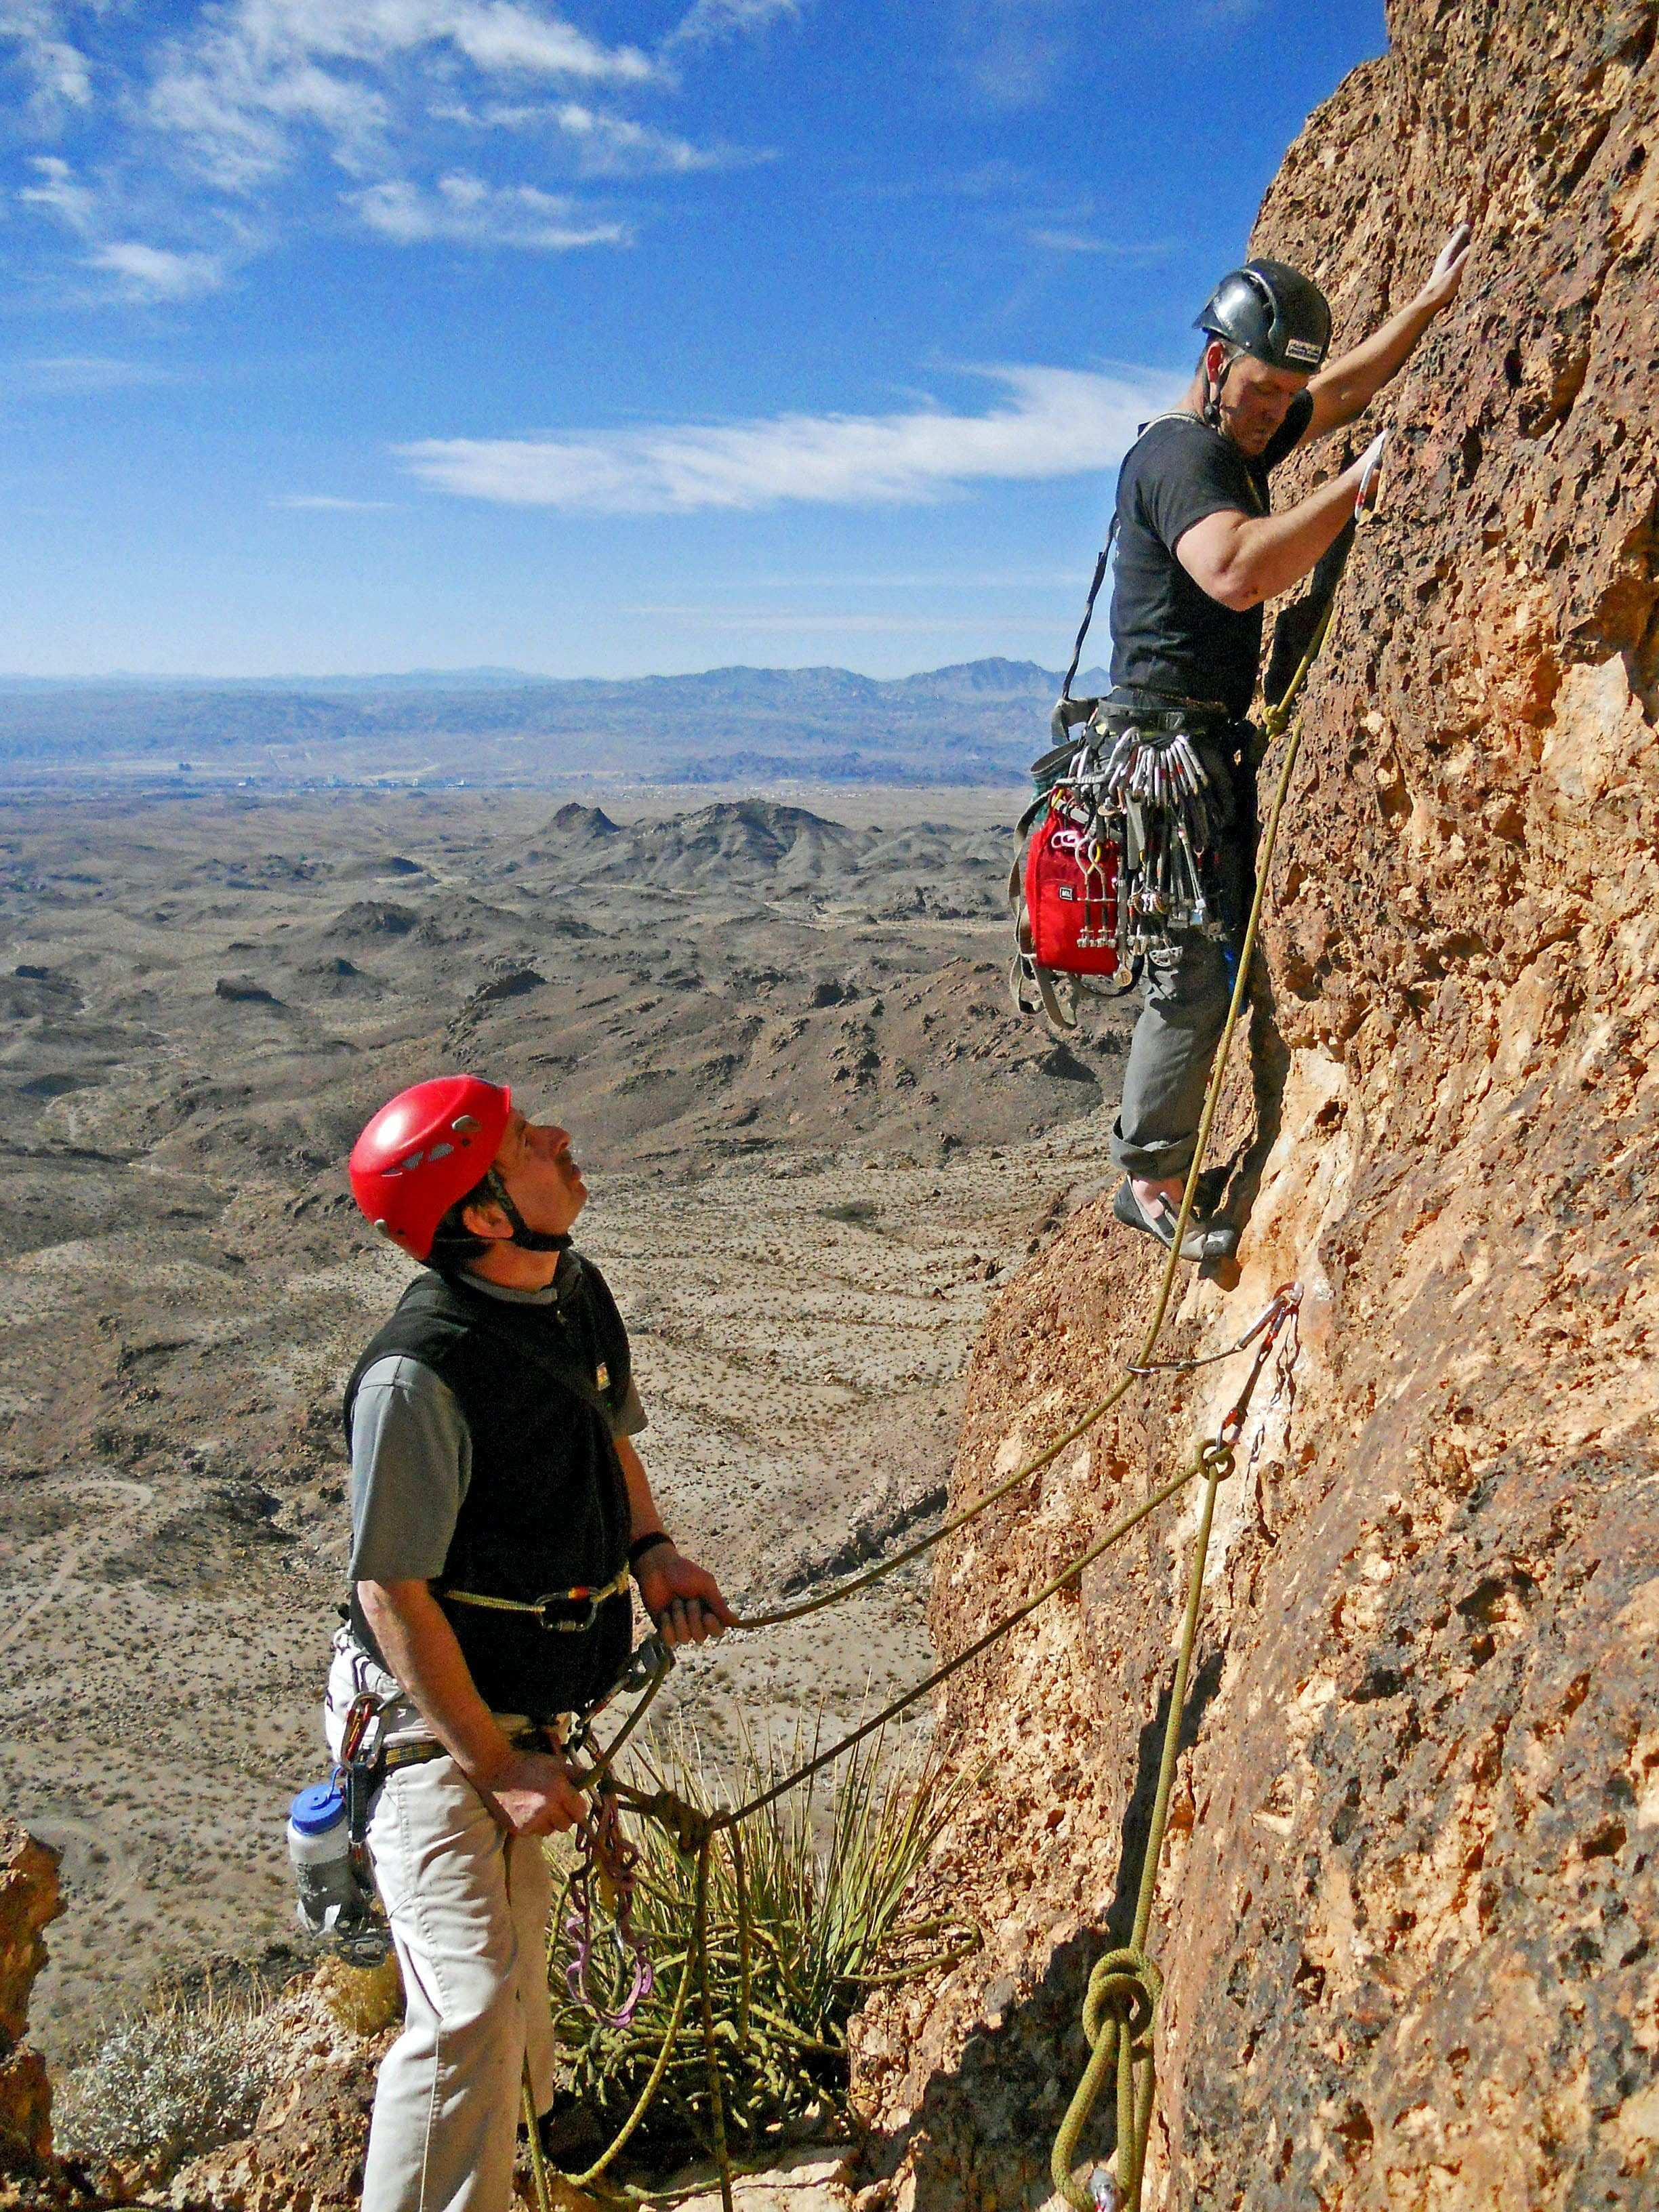 What Is a Pitch in Climbing